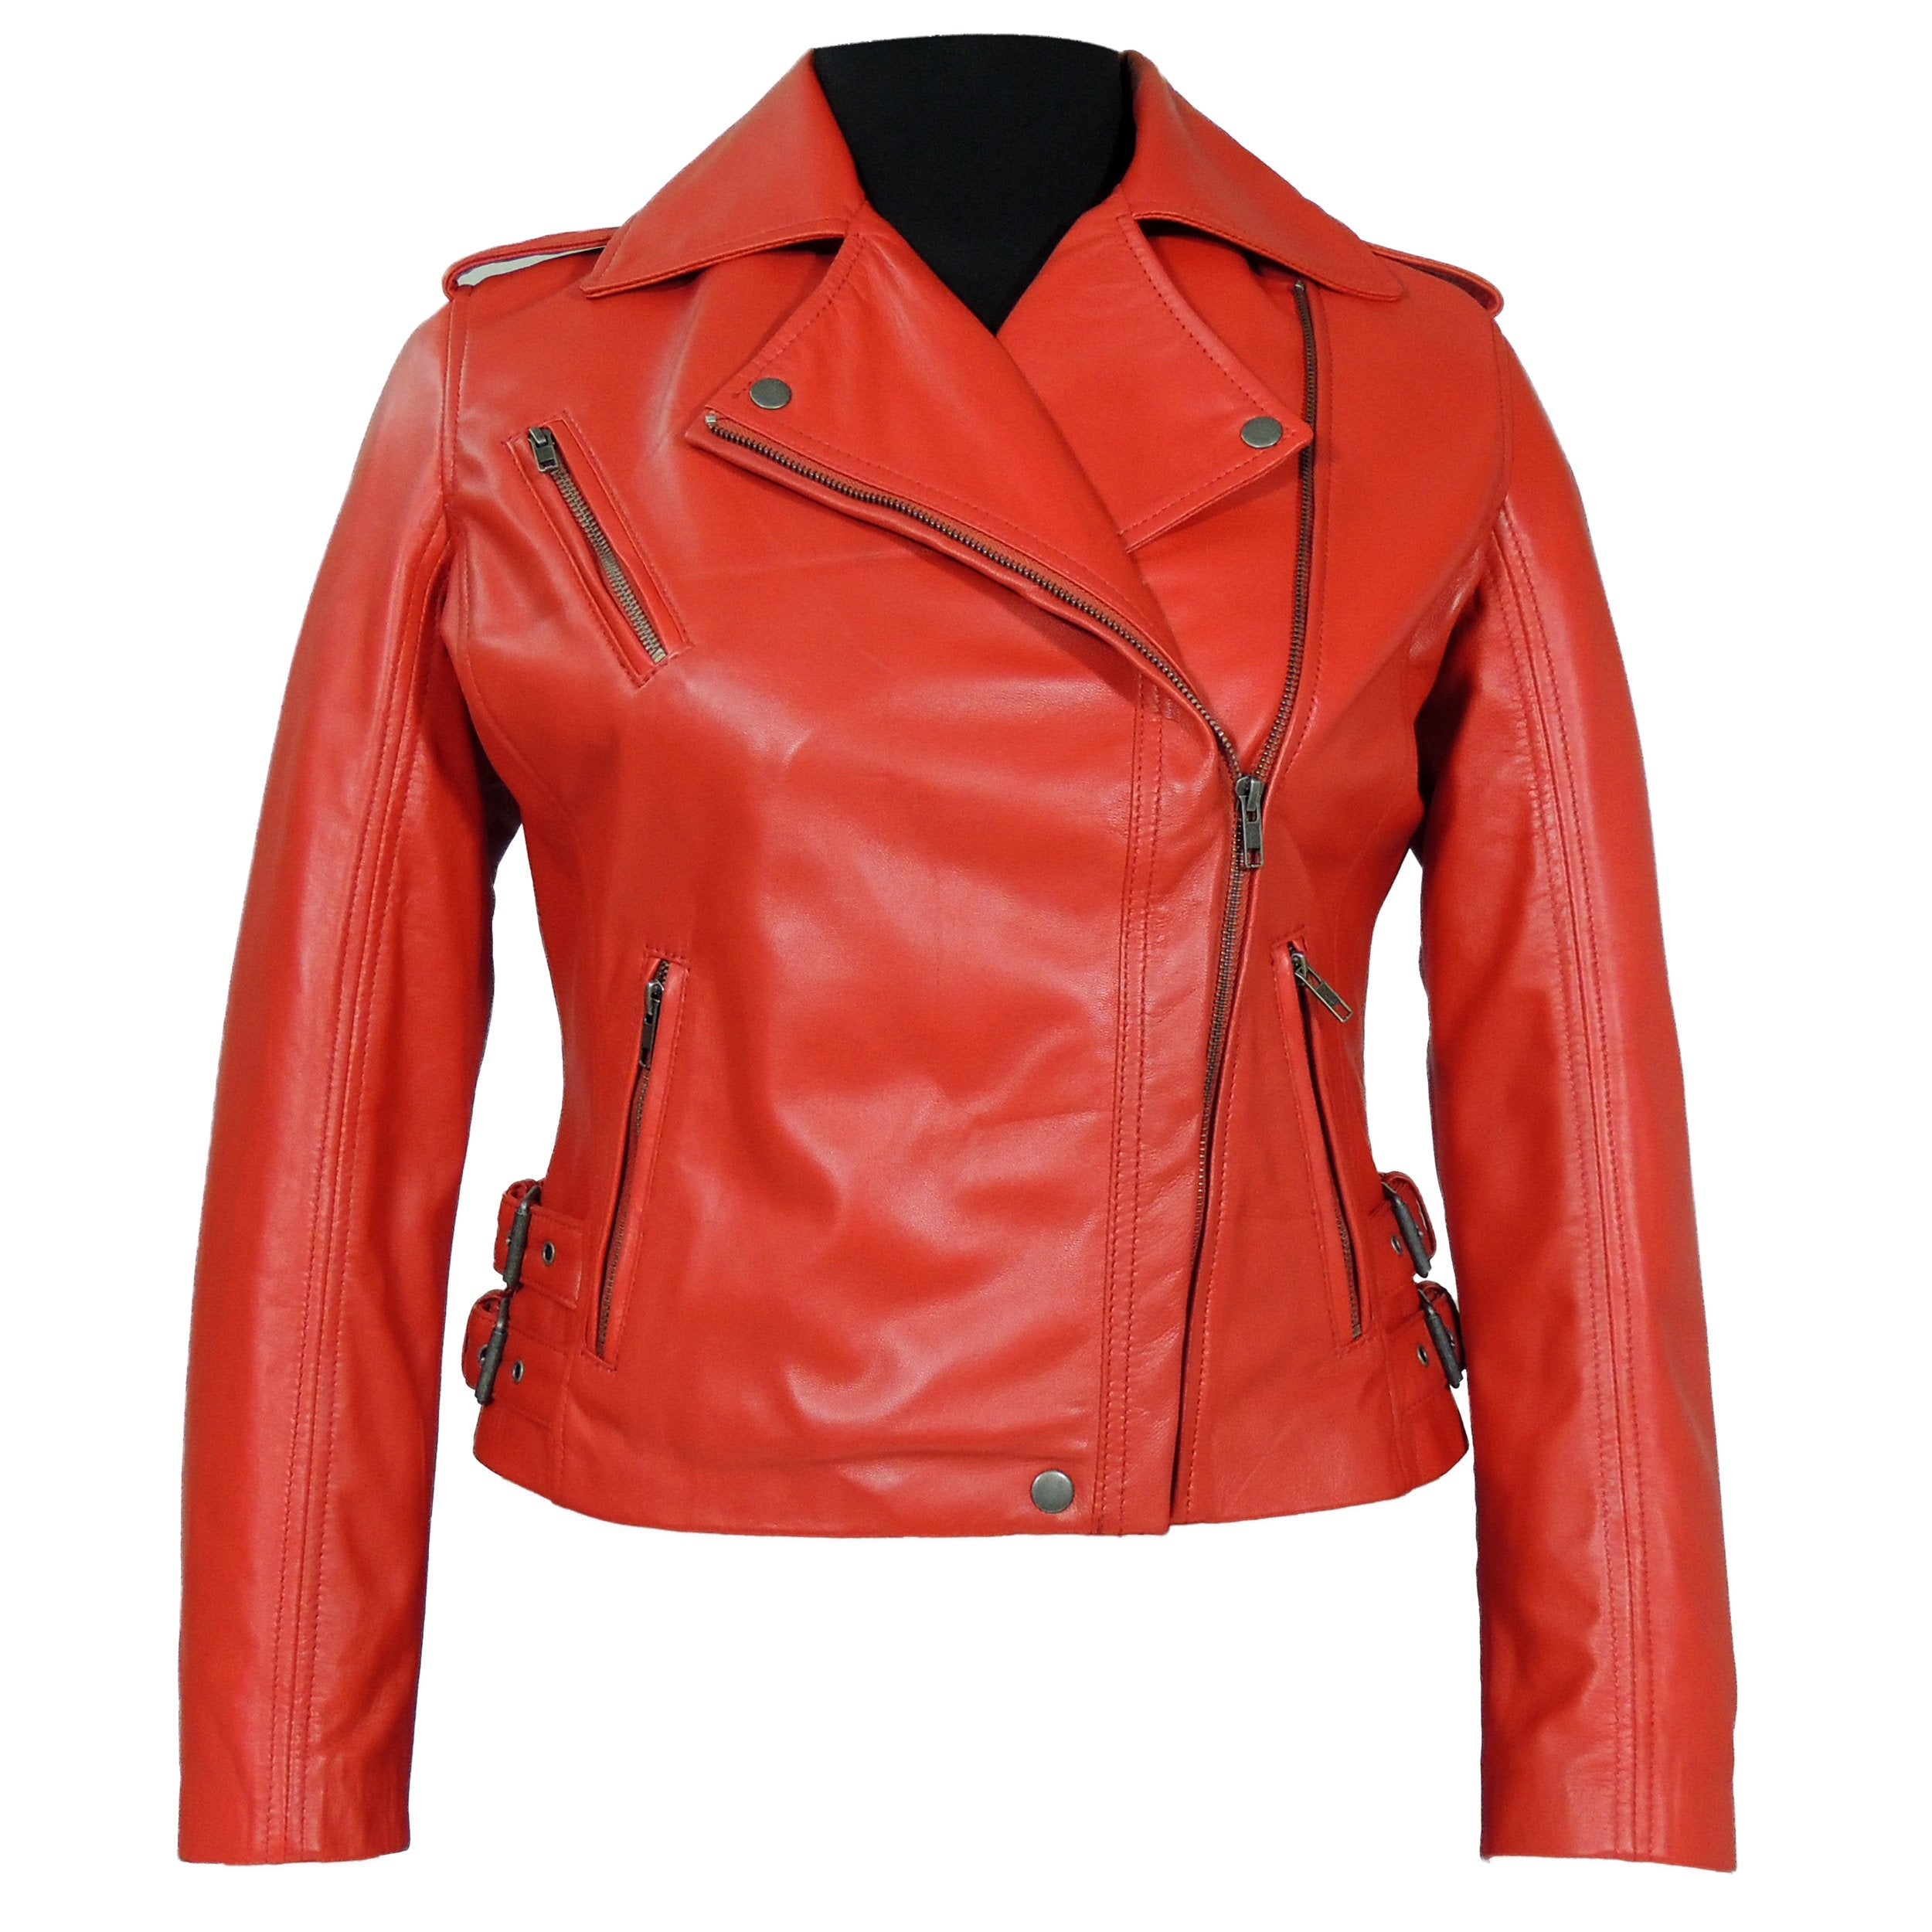 Womens Leather Jacket - Ava Womens Leather Jacket